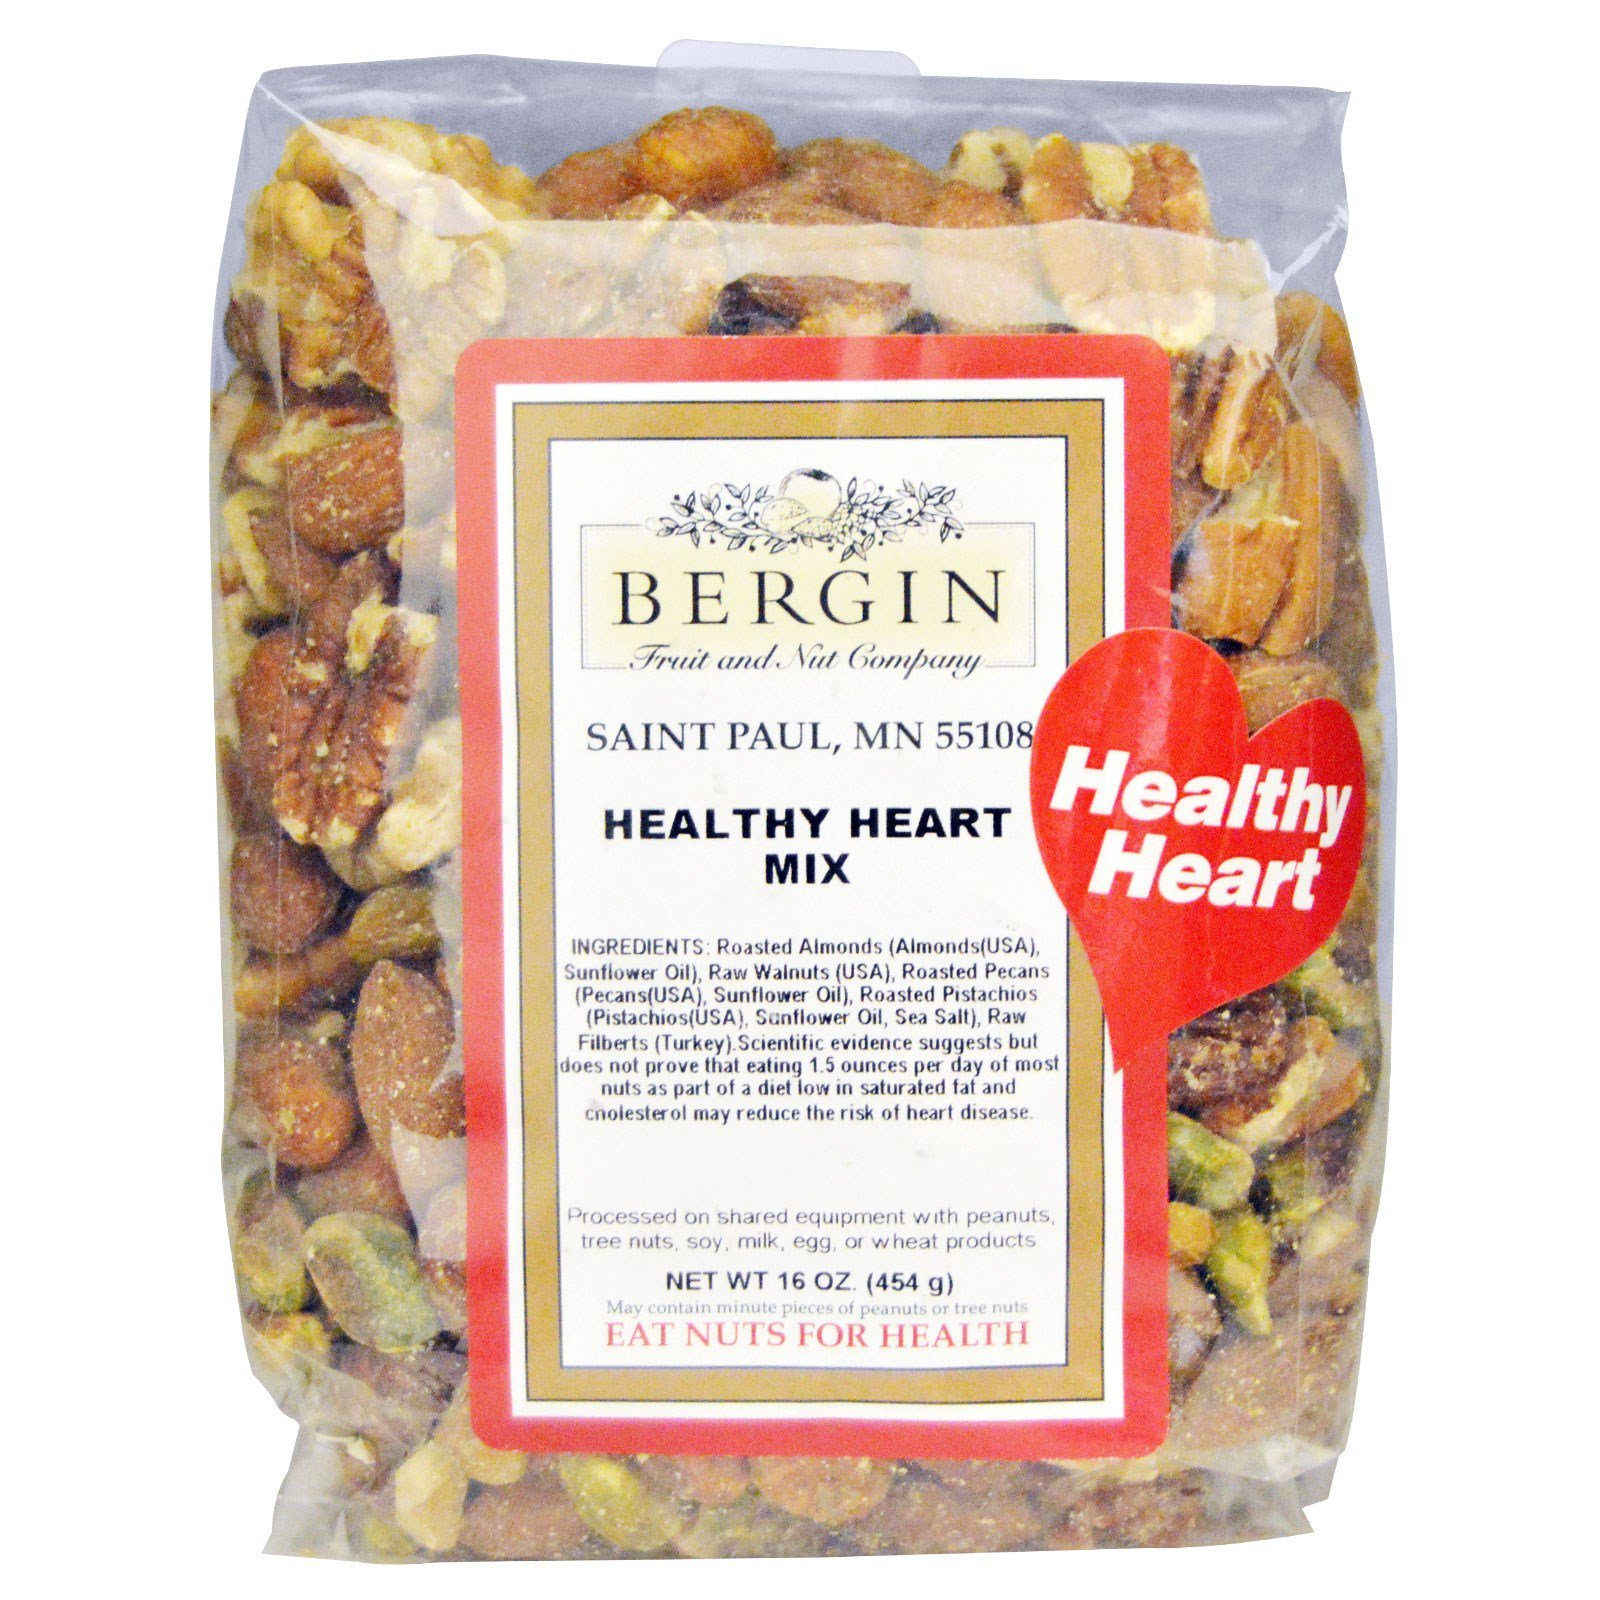 Bergin Fruit and Nut Company, Heart Healthy Mix, 16 oz (454 g)